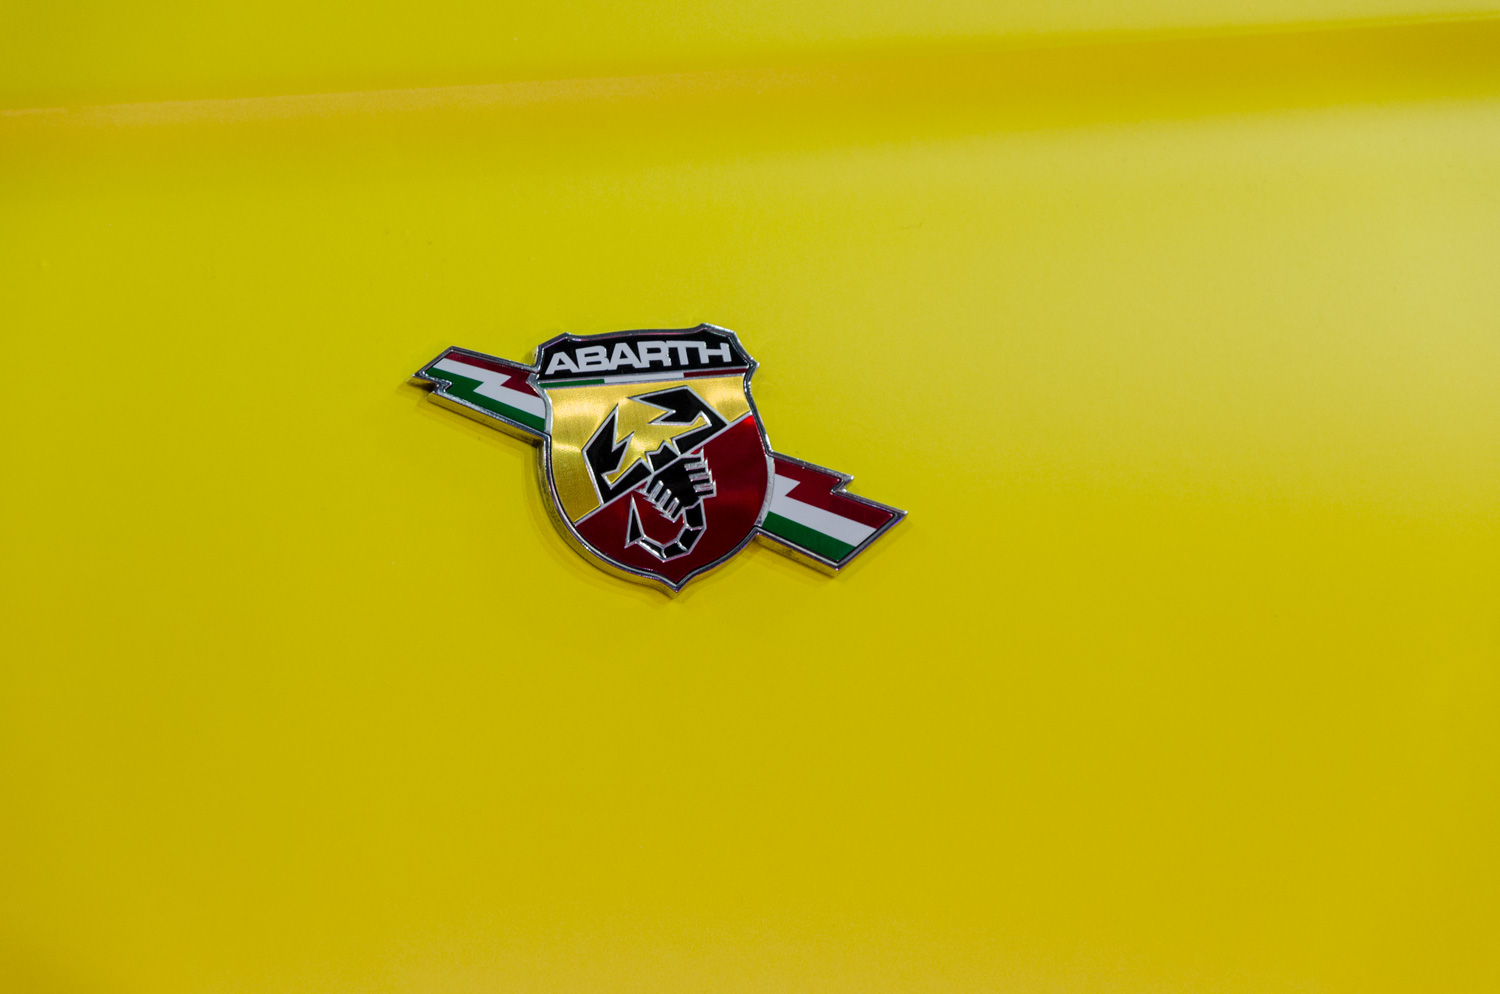 595 Abarth wrapping giallo